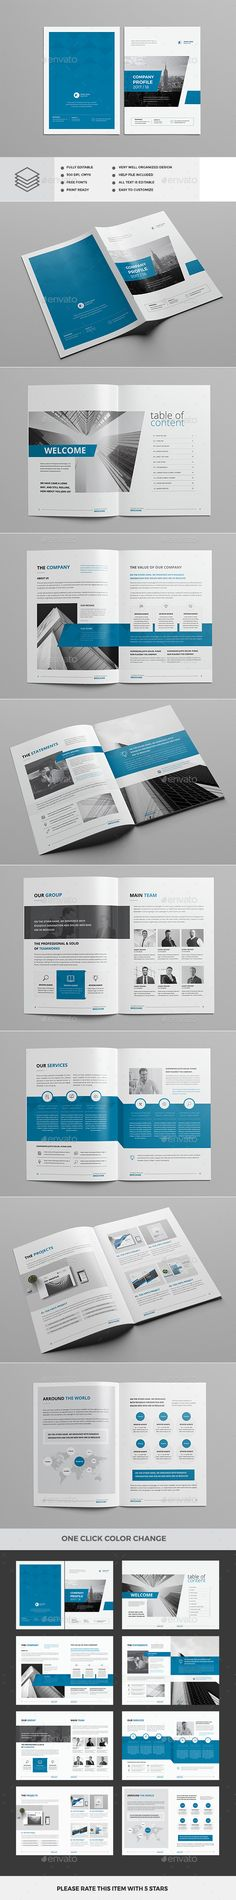 Annual Report 24 Pages Template, Brochures and Annual reports - company profile sample download